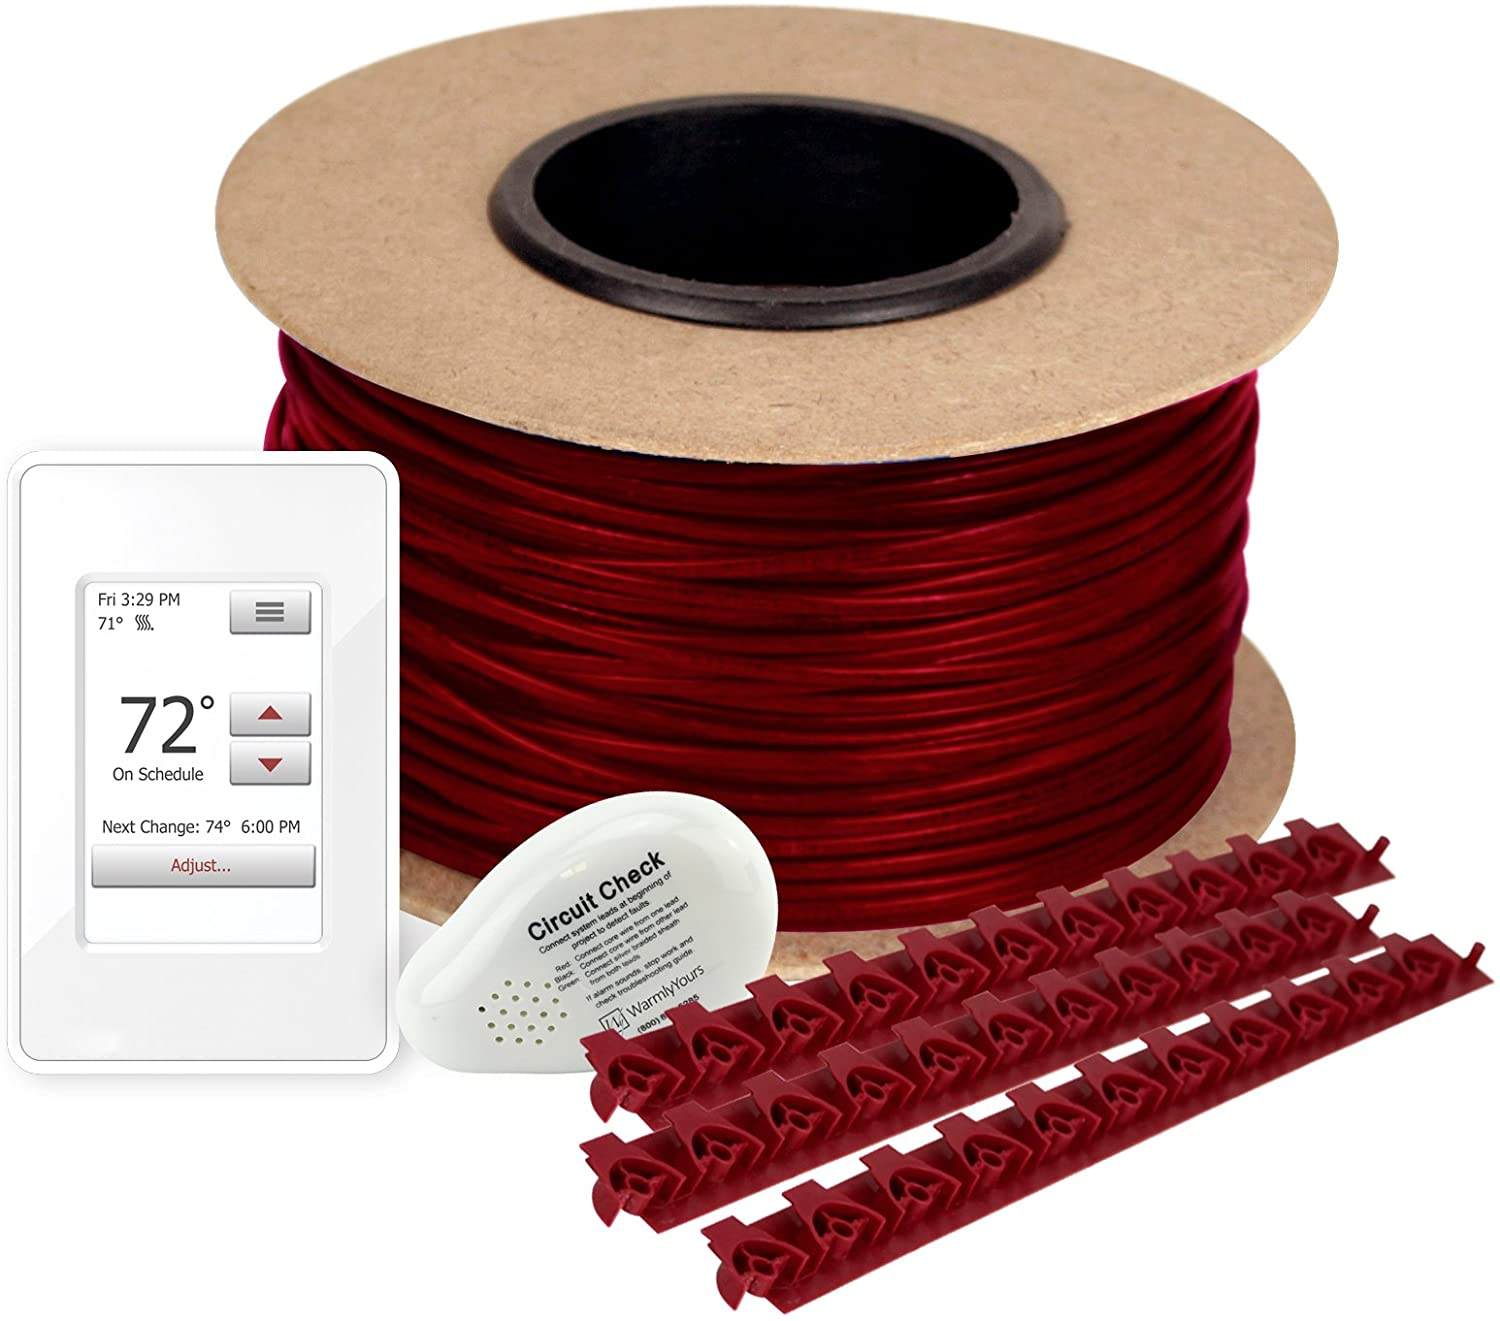 WarmlyYours TCT120-KIT-OT-070 Tempzone Electric Floor Heating Cable Kit with Strips, 70 ft. (17.5 sq. ft.)